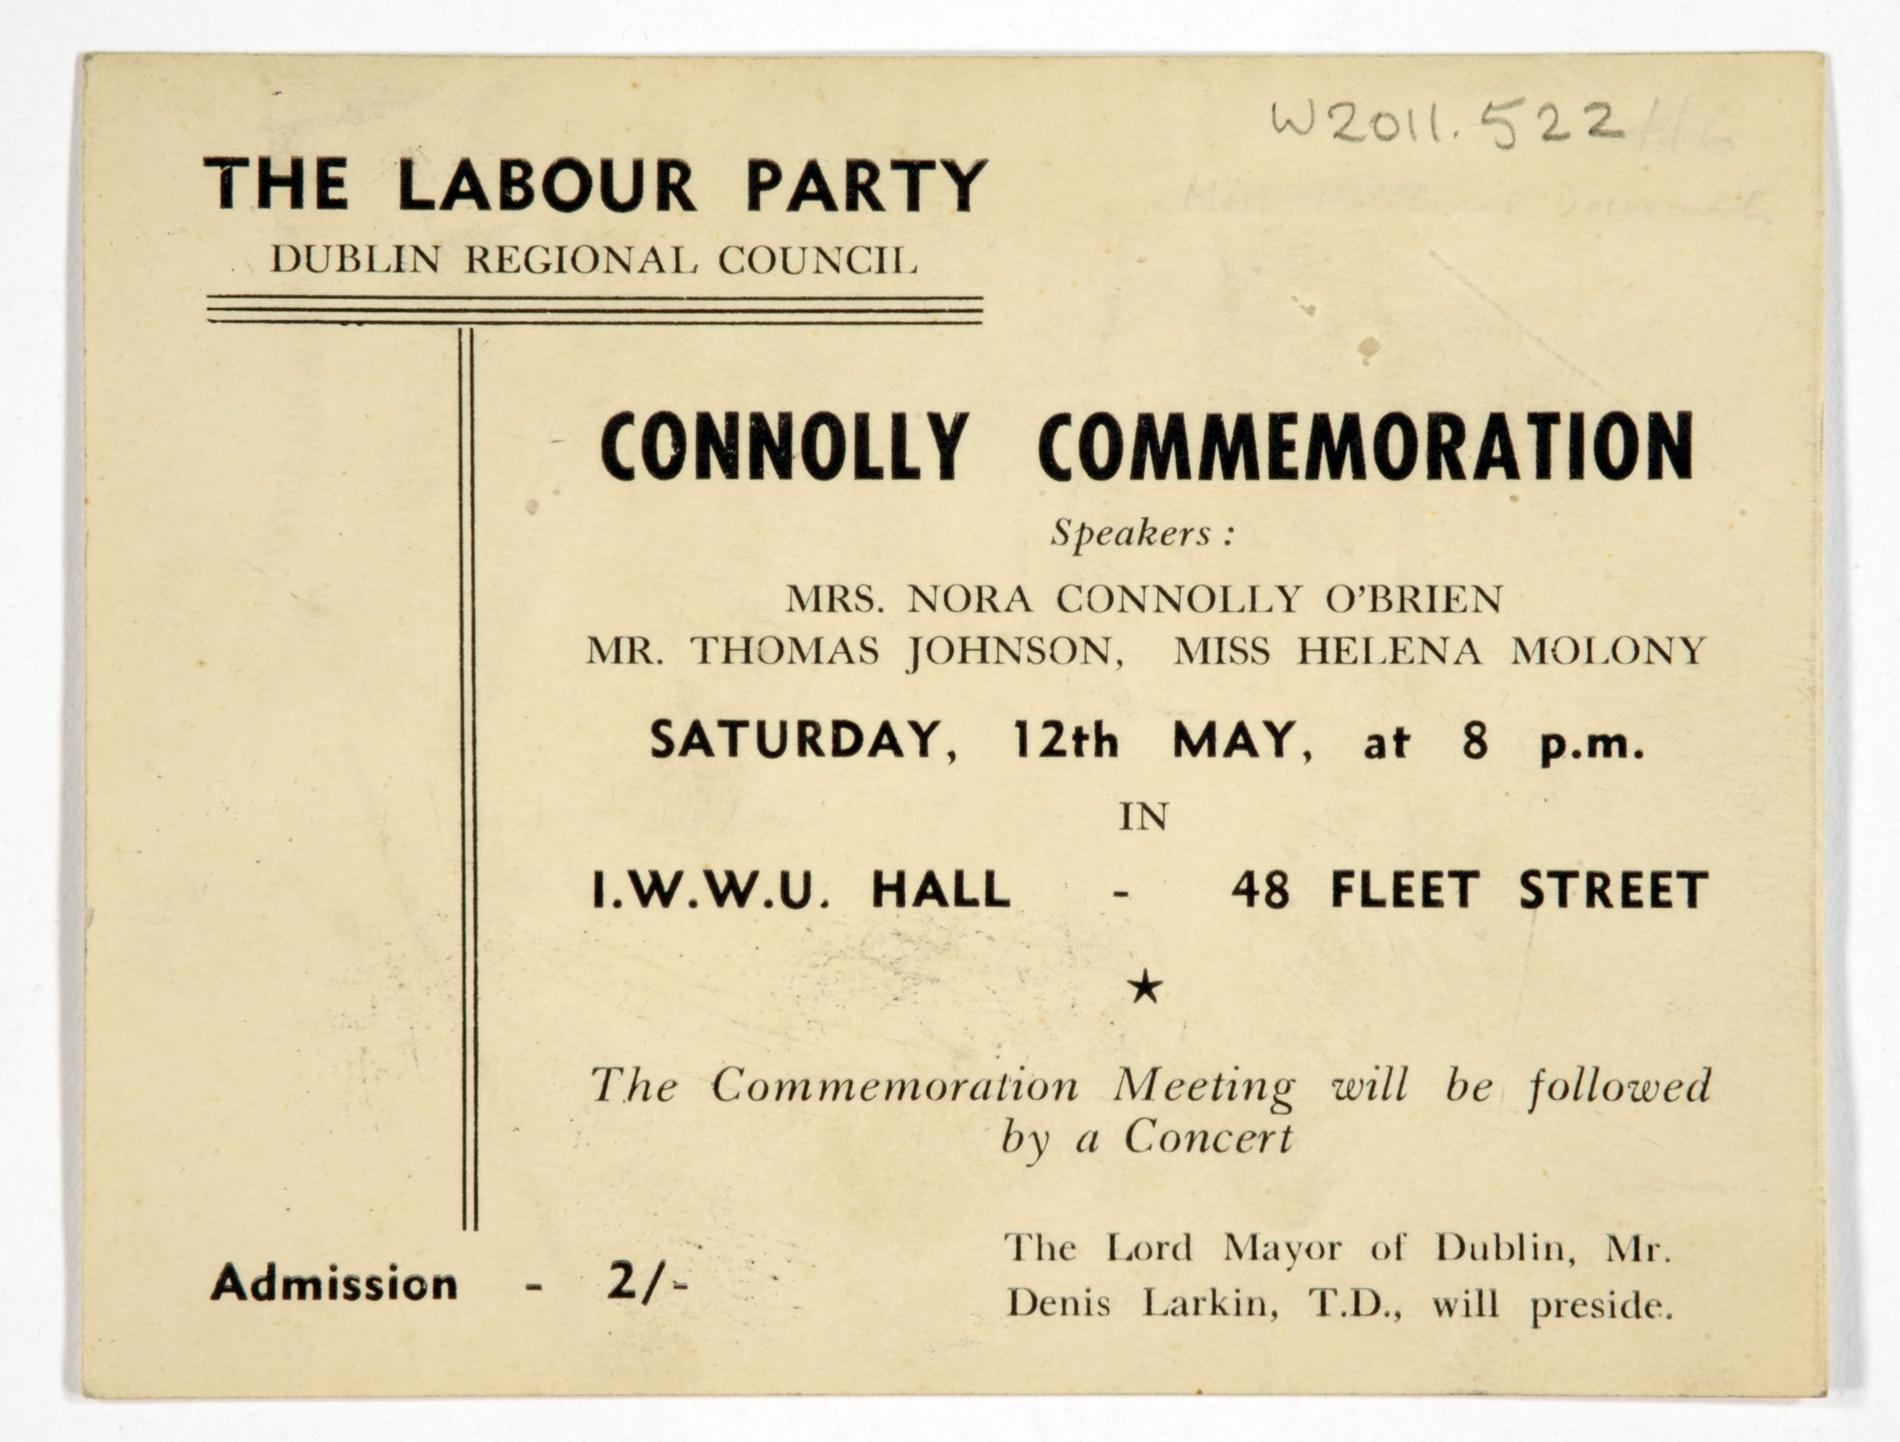 Connolly Commemoration (Ticket)